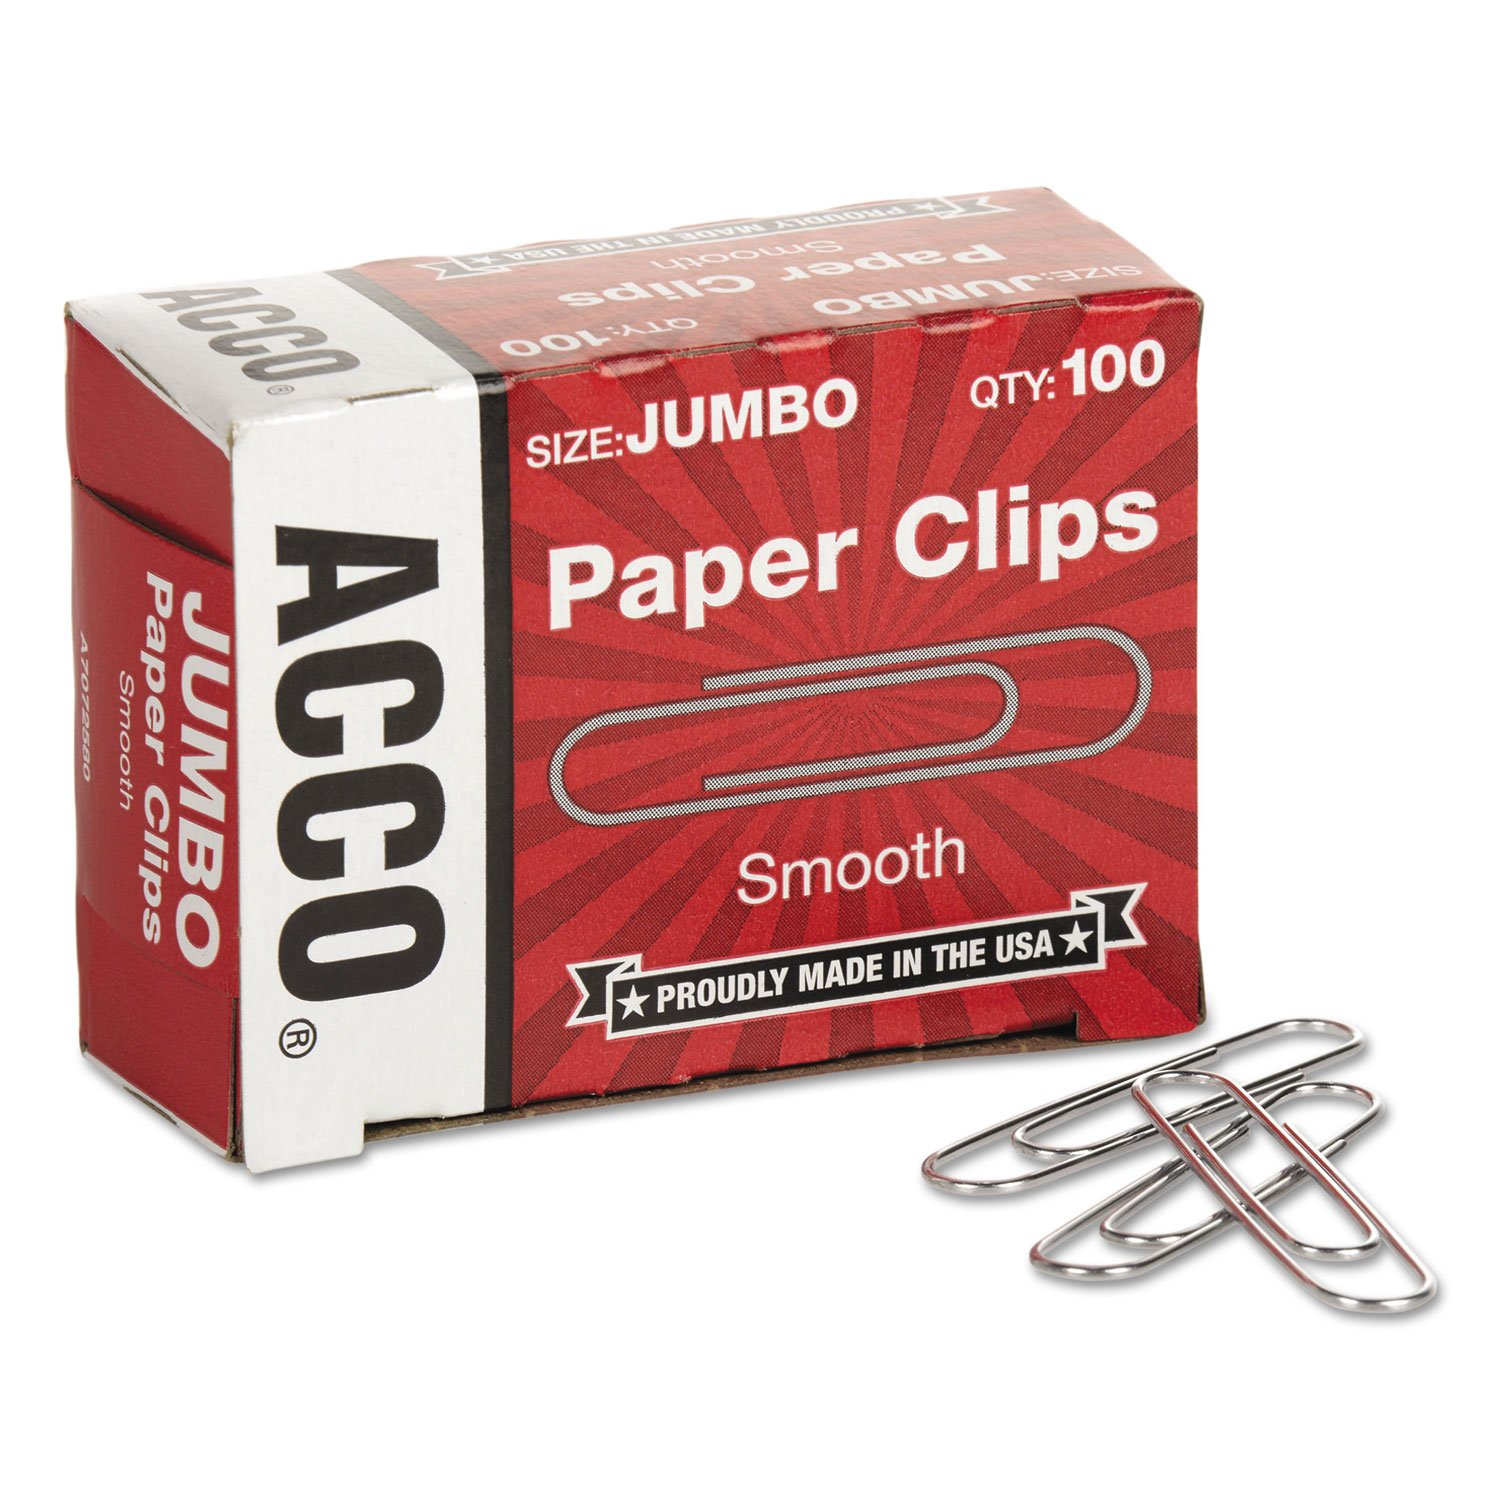 - Smooth Economy Paper Clip, Steel Wire, Jumbo, Silver, 100/Box, 10 Boxes/Pack